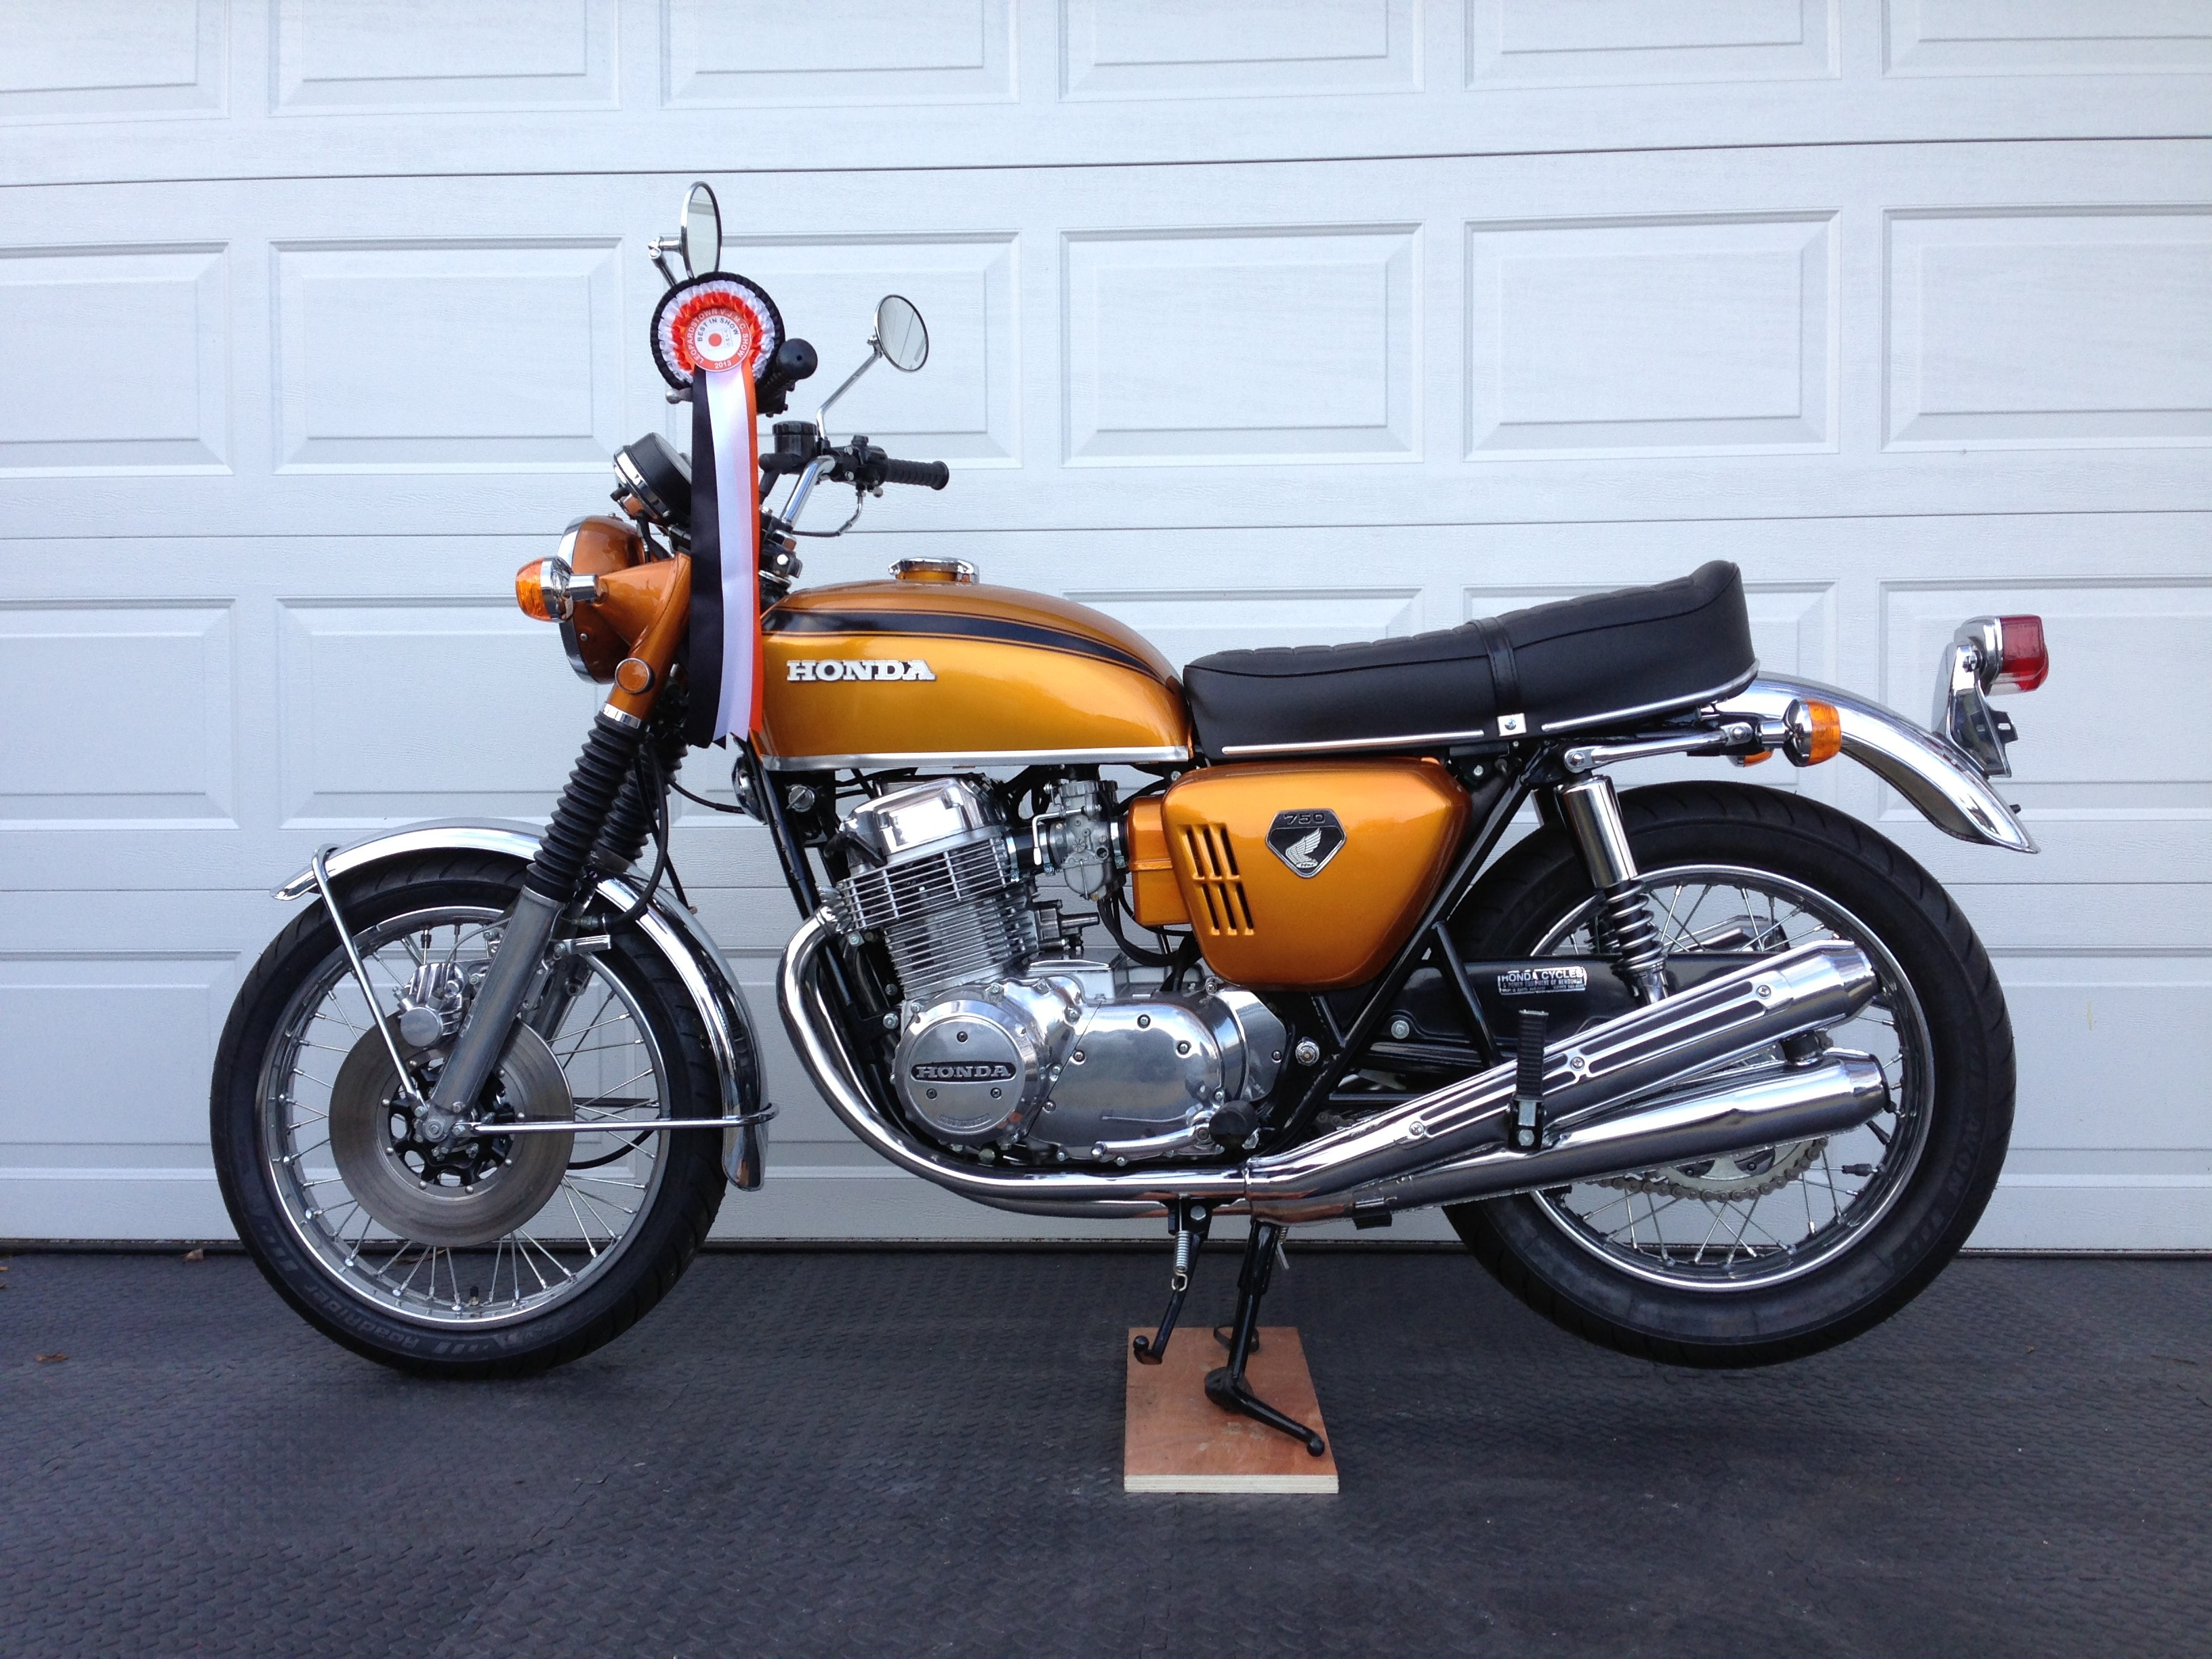 honda cb 750 four k0 specs 1968 1969 autoevolution. Black Bedroom Furniture Sets. Home Design Ideas